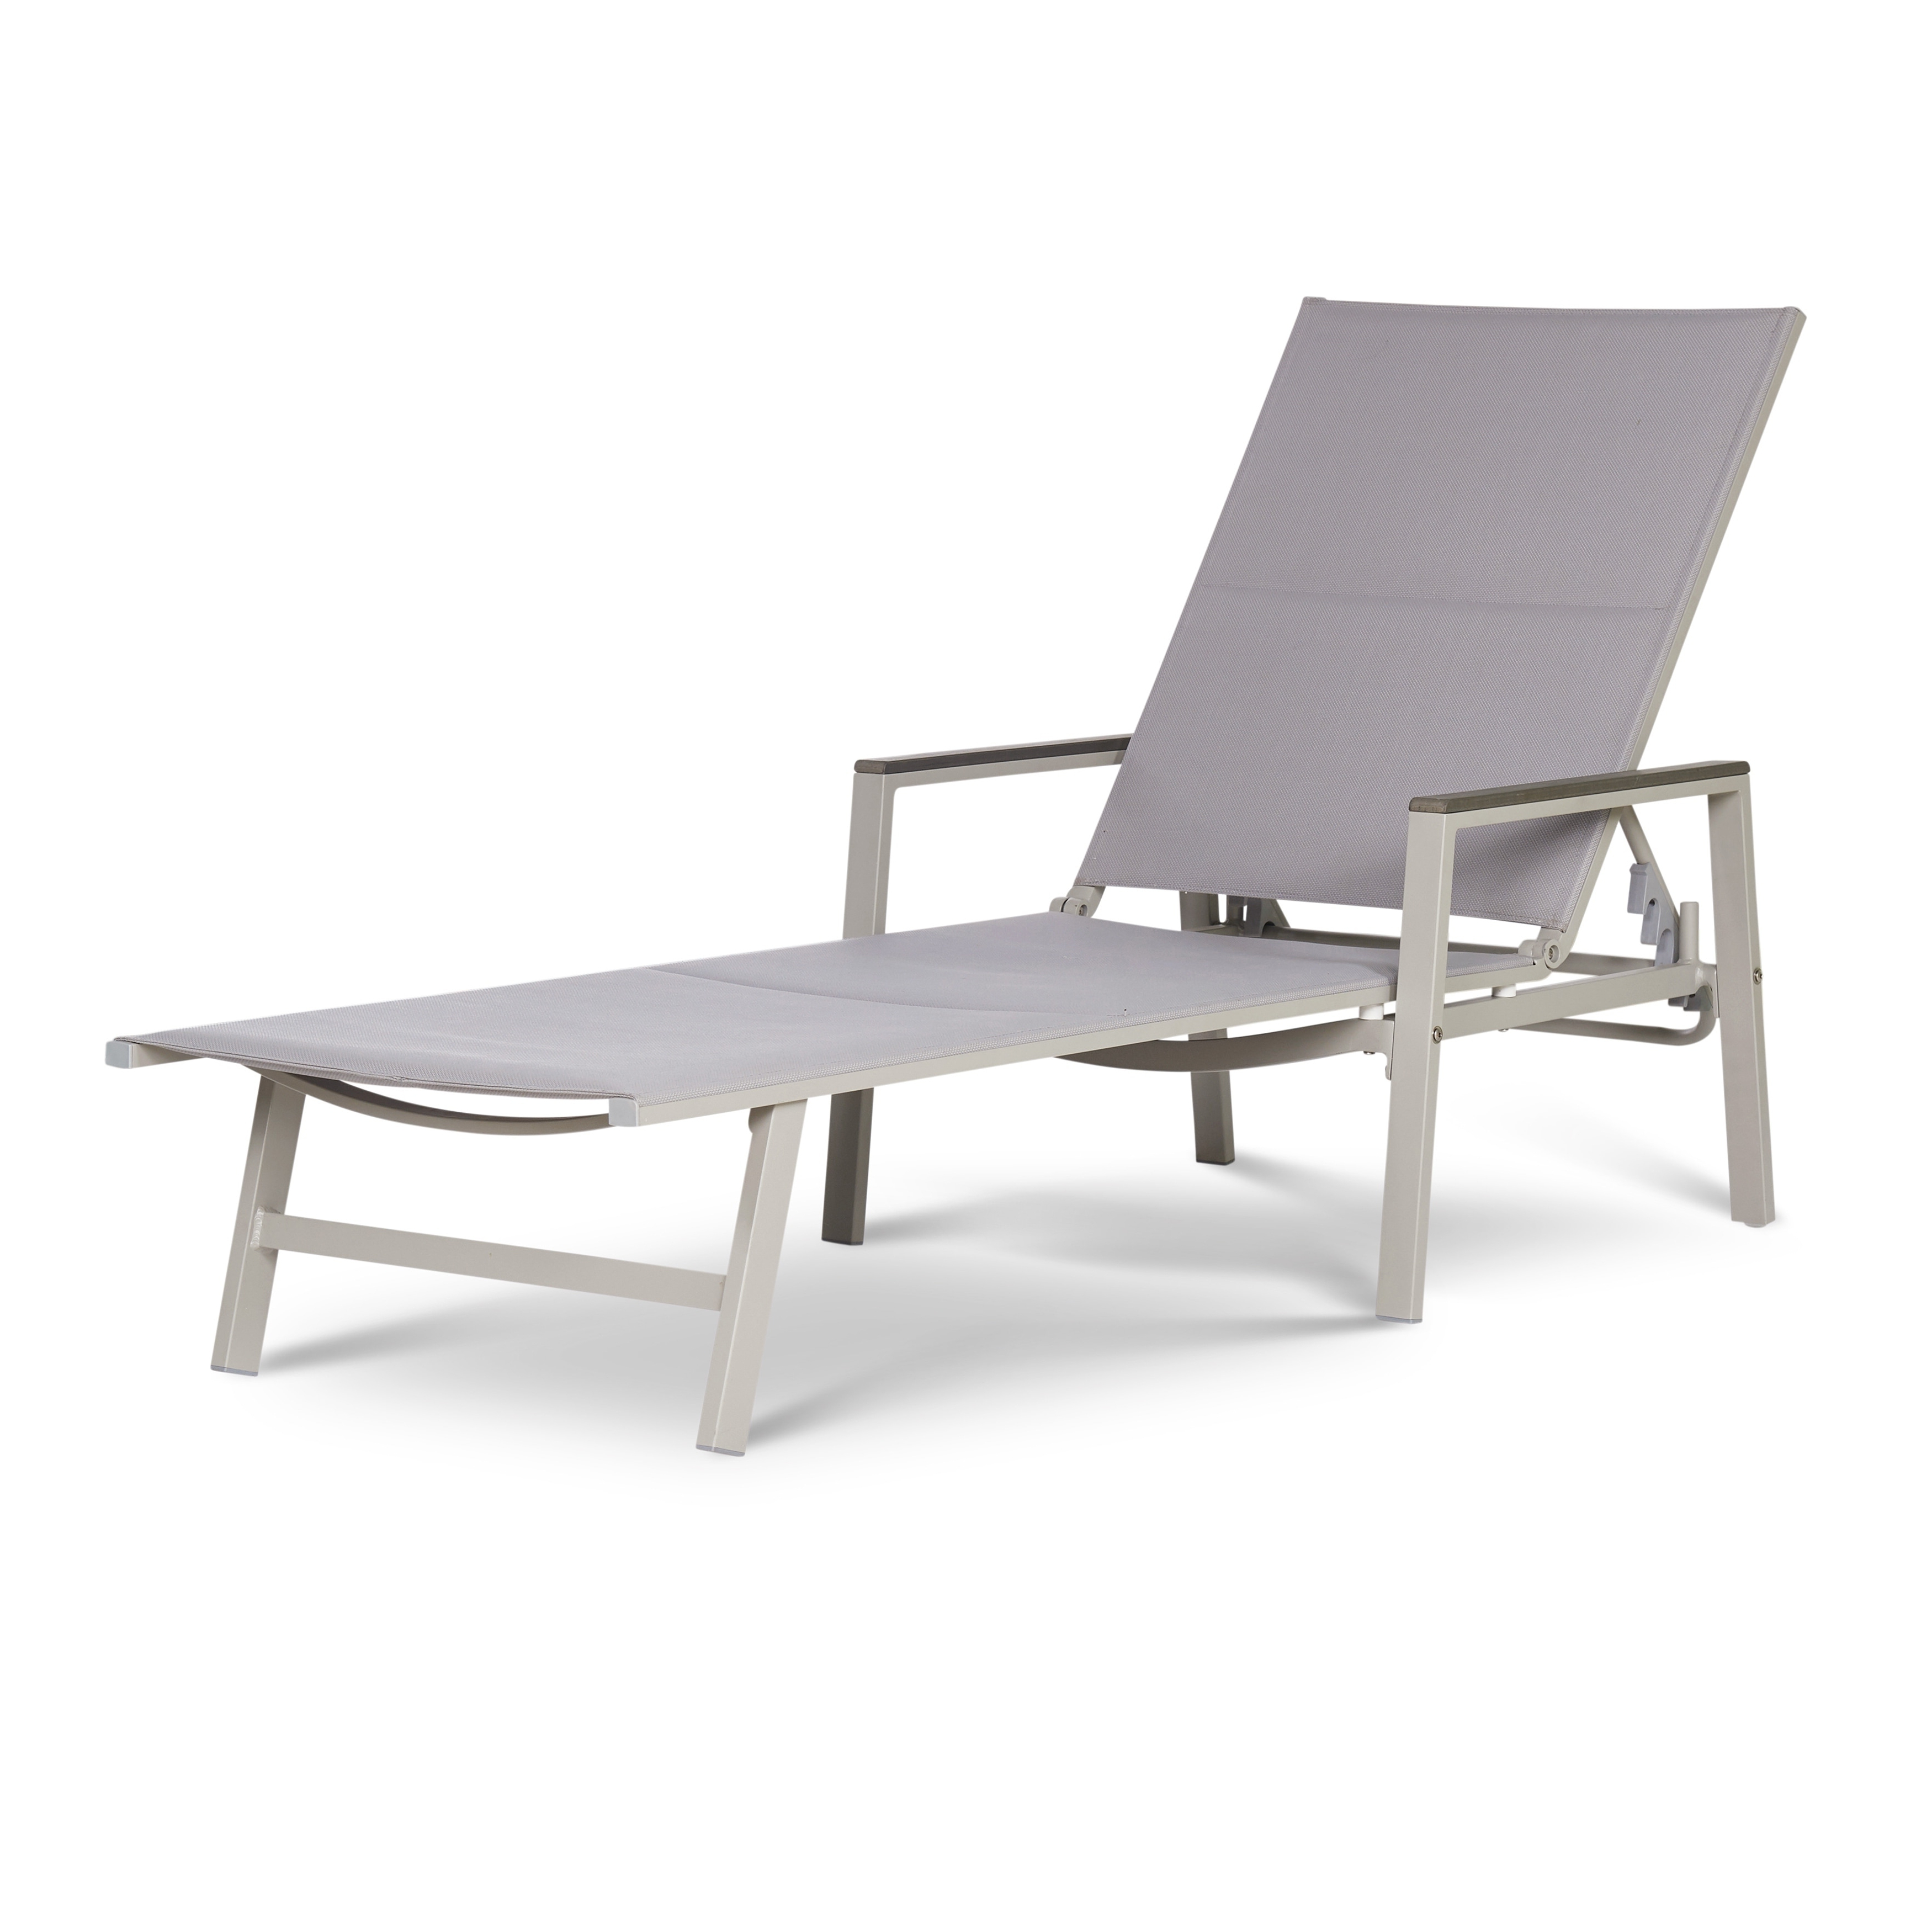 Trendy Outdoor Living Manteca Ash Grey Acacia Wood Lounge Chairs Regarding Positano Grey Sling Patio Chaise Lounge, Gray, Russ (View 22 of 25)